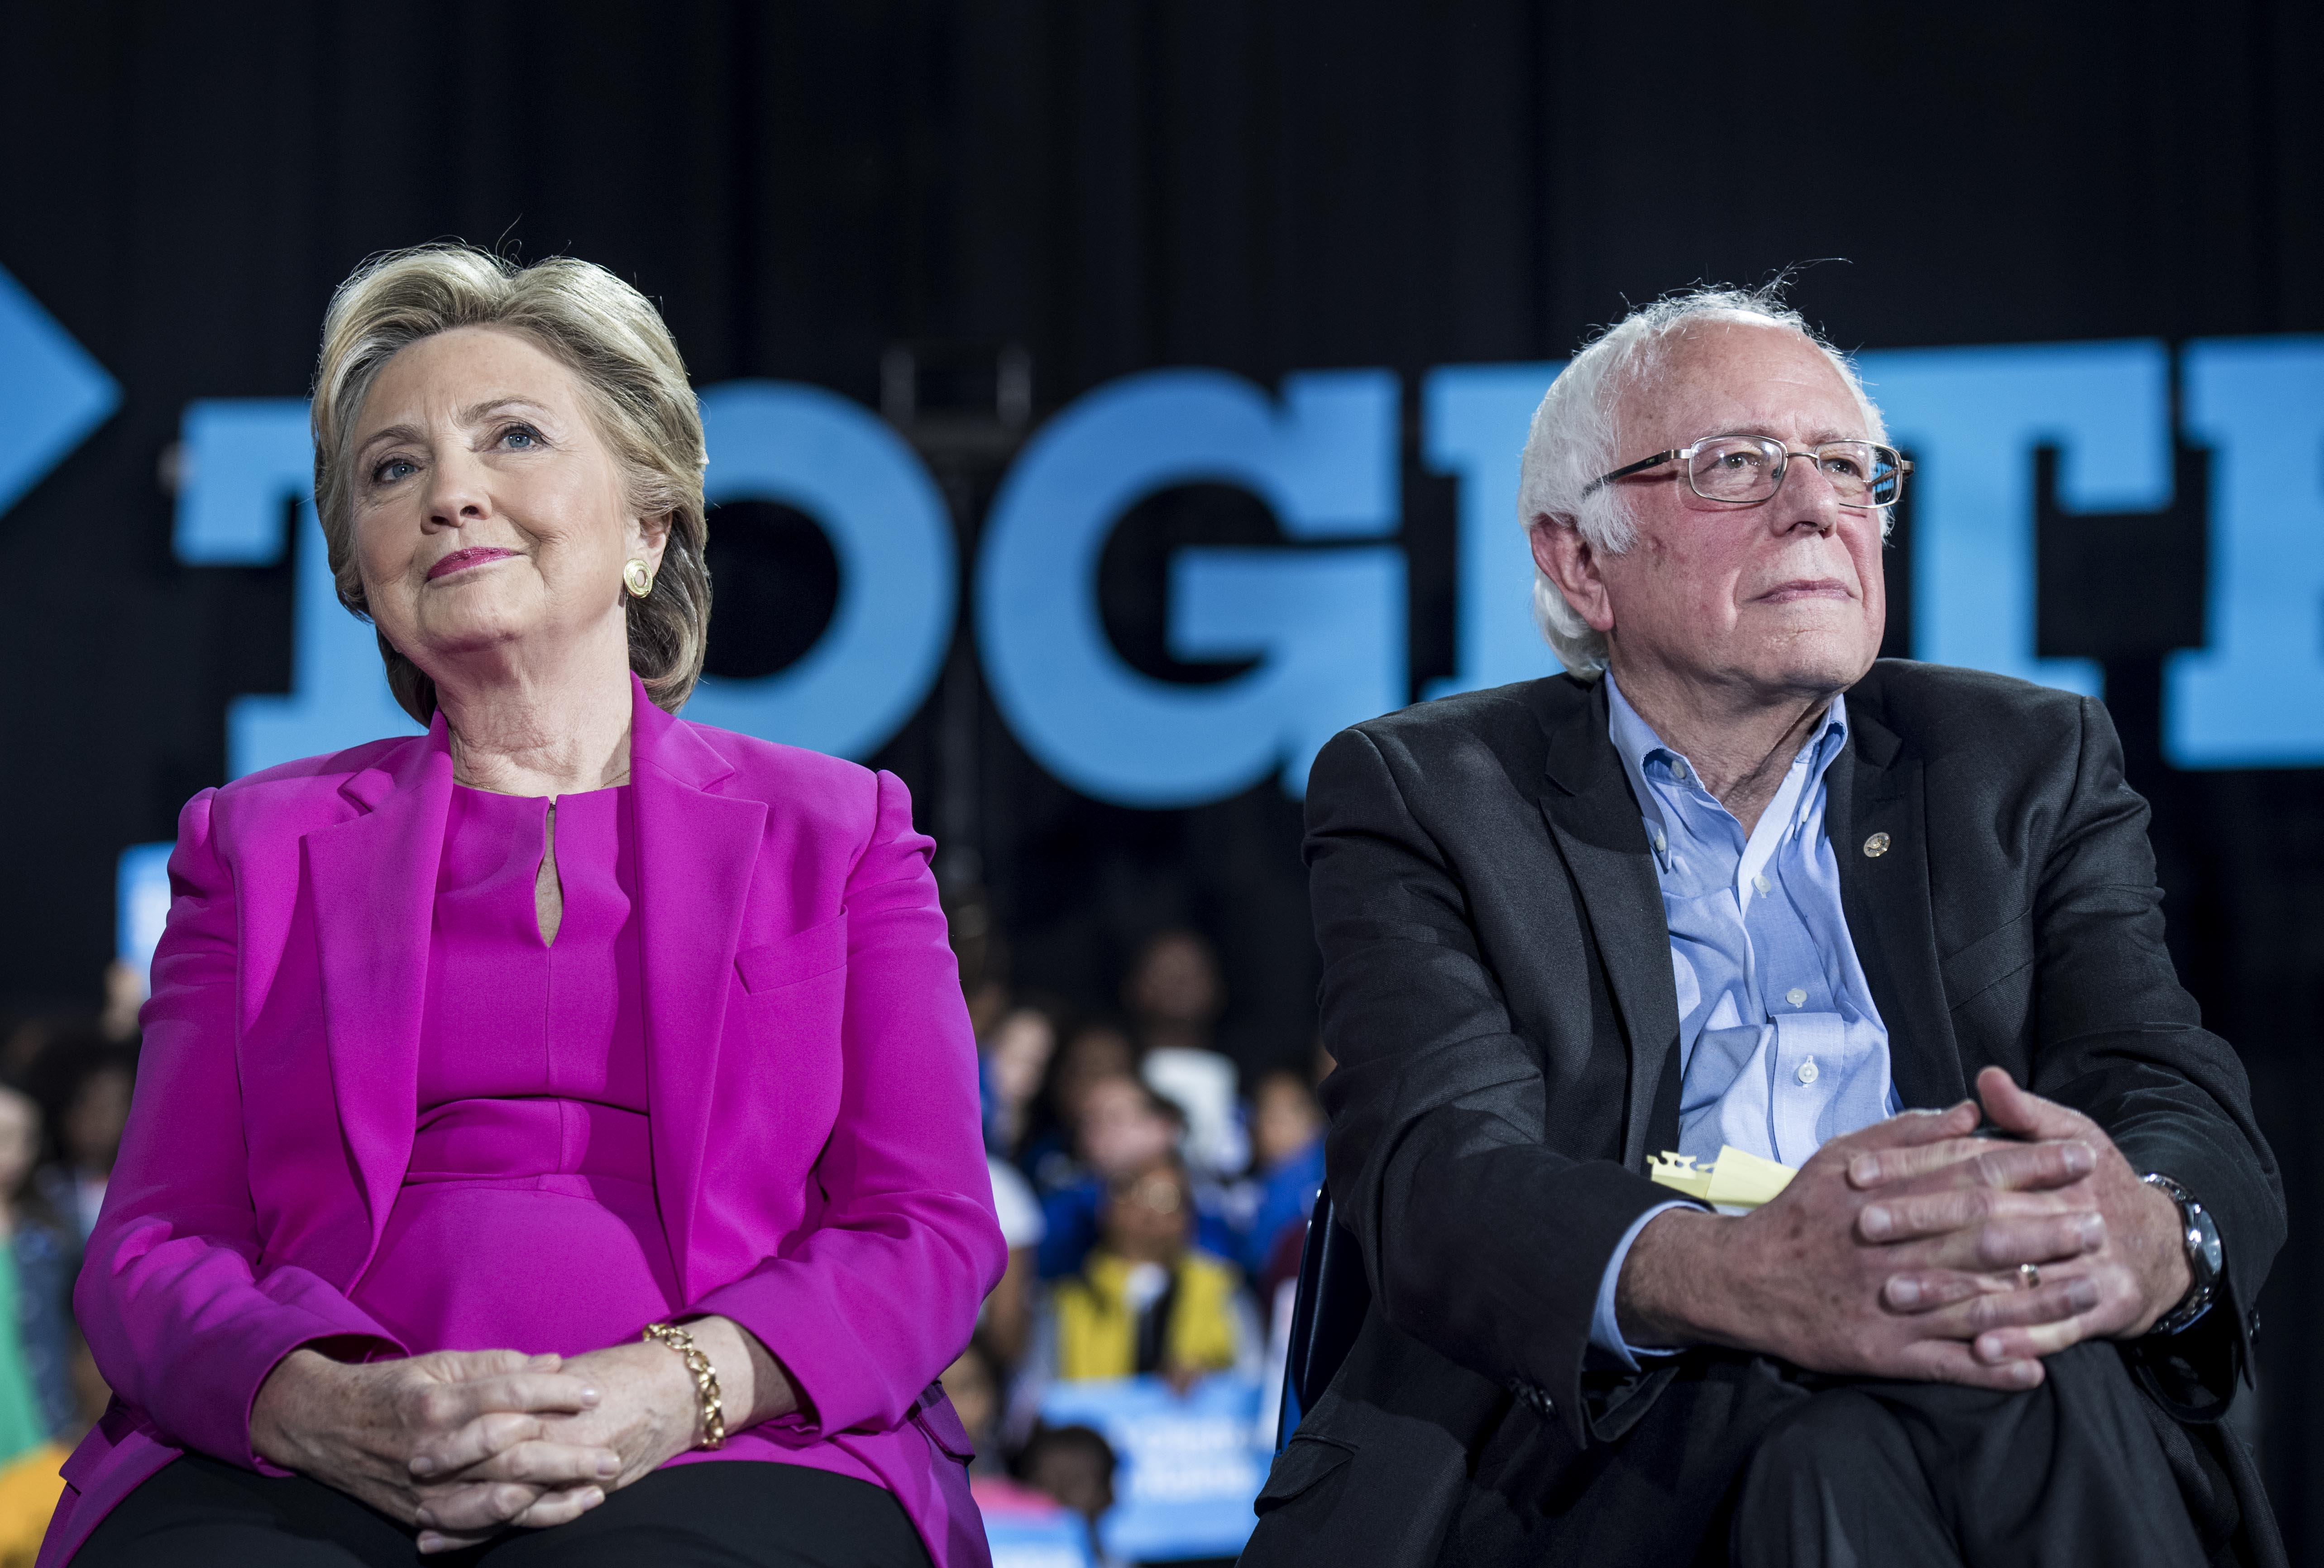 End of Blame Game: Sanders (and His Supporters) Helped Hillary Win Popular Vote in 2016